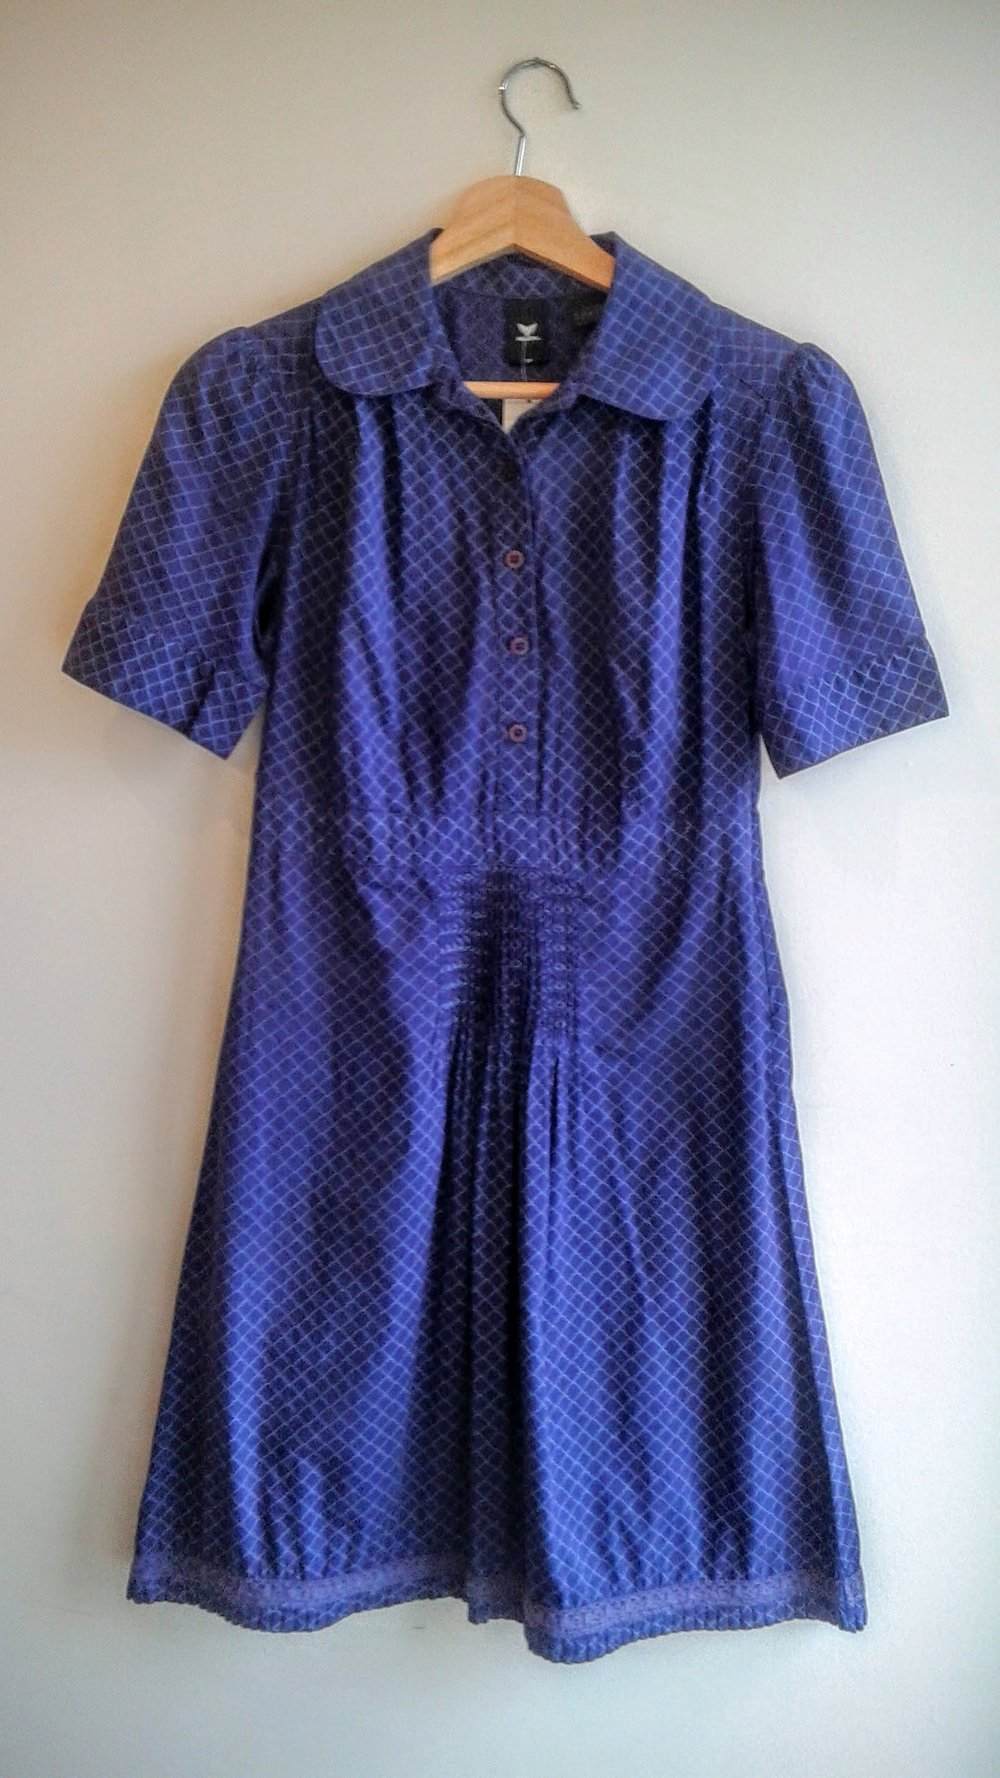 Industry dress; Size S, $26